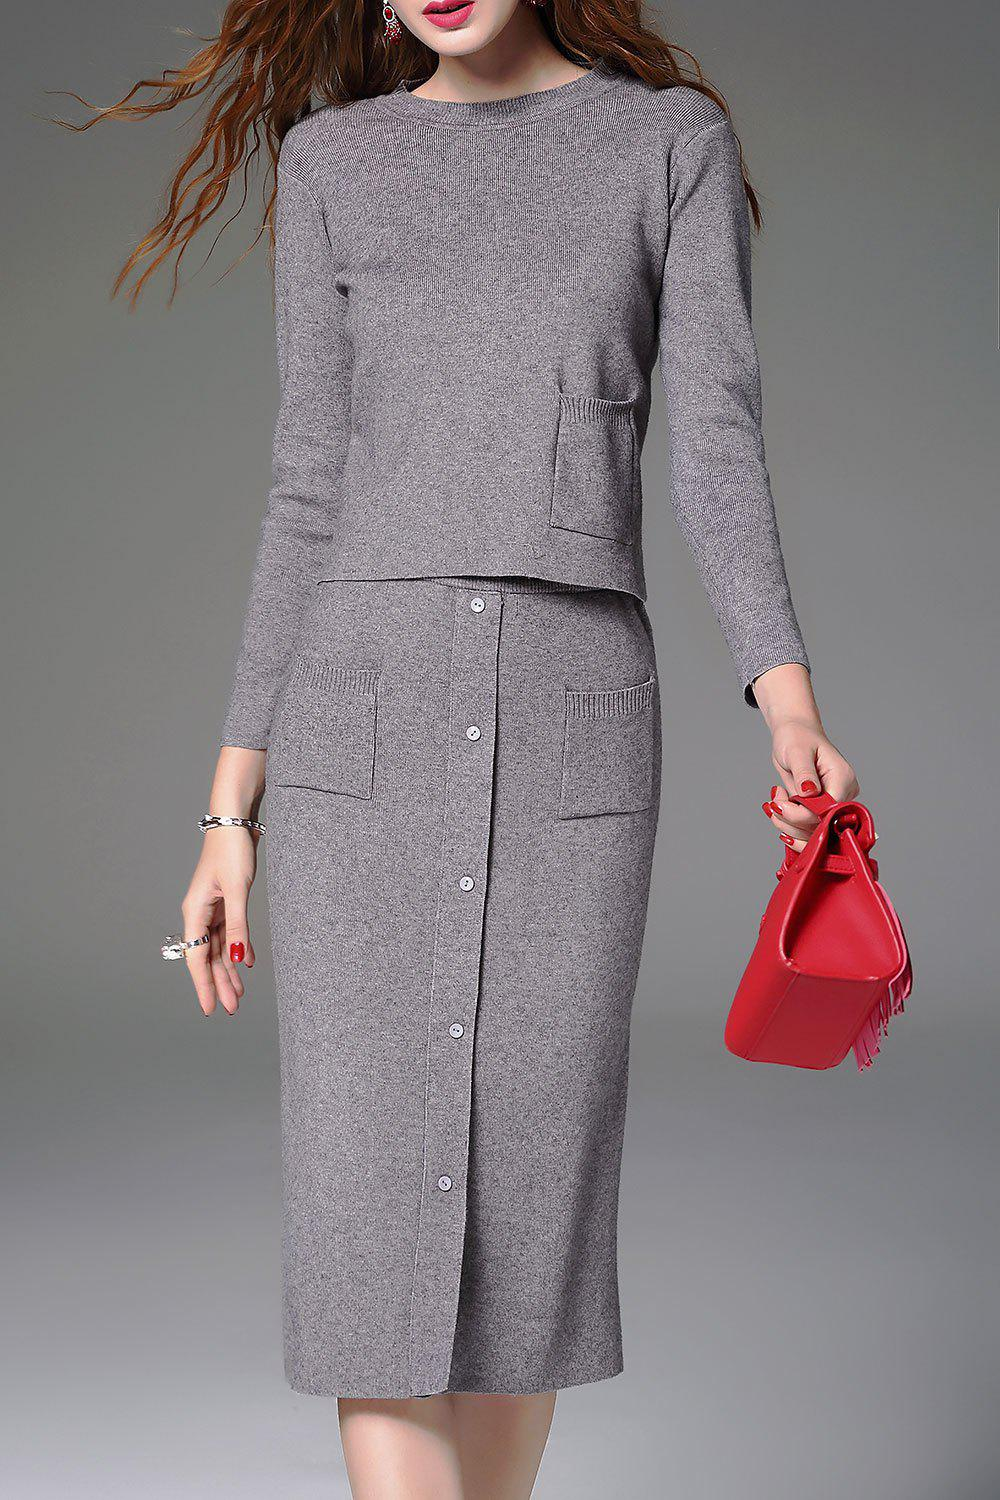 Knitted Sweater and Button Front Midi SkirtWOMEN<br><br>Size: S; Color: GRAY; Style: Two Piece; Occasion: Casual ,Work; Material: Cotton,Polyester; Composition: 65% Cotton,35% Polyester; Dresses Length: Mid-Calf; Neckline: Round Collar; Sleeve Length: Long Sleeves; Embellishment: Pockets; Pattern Type: Solid; With Belt: No; Season: Fall,Winter; Weight: 0.6200kg; Package Contents: 1 x Sweater  1 x Skirt;